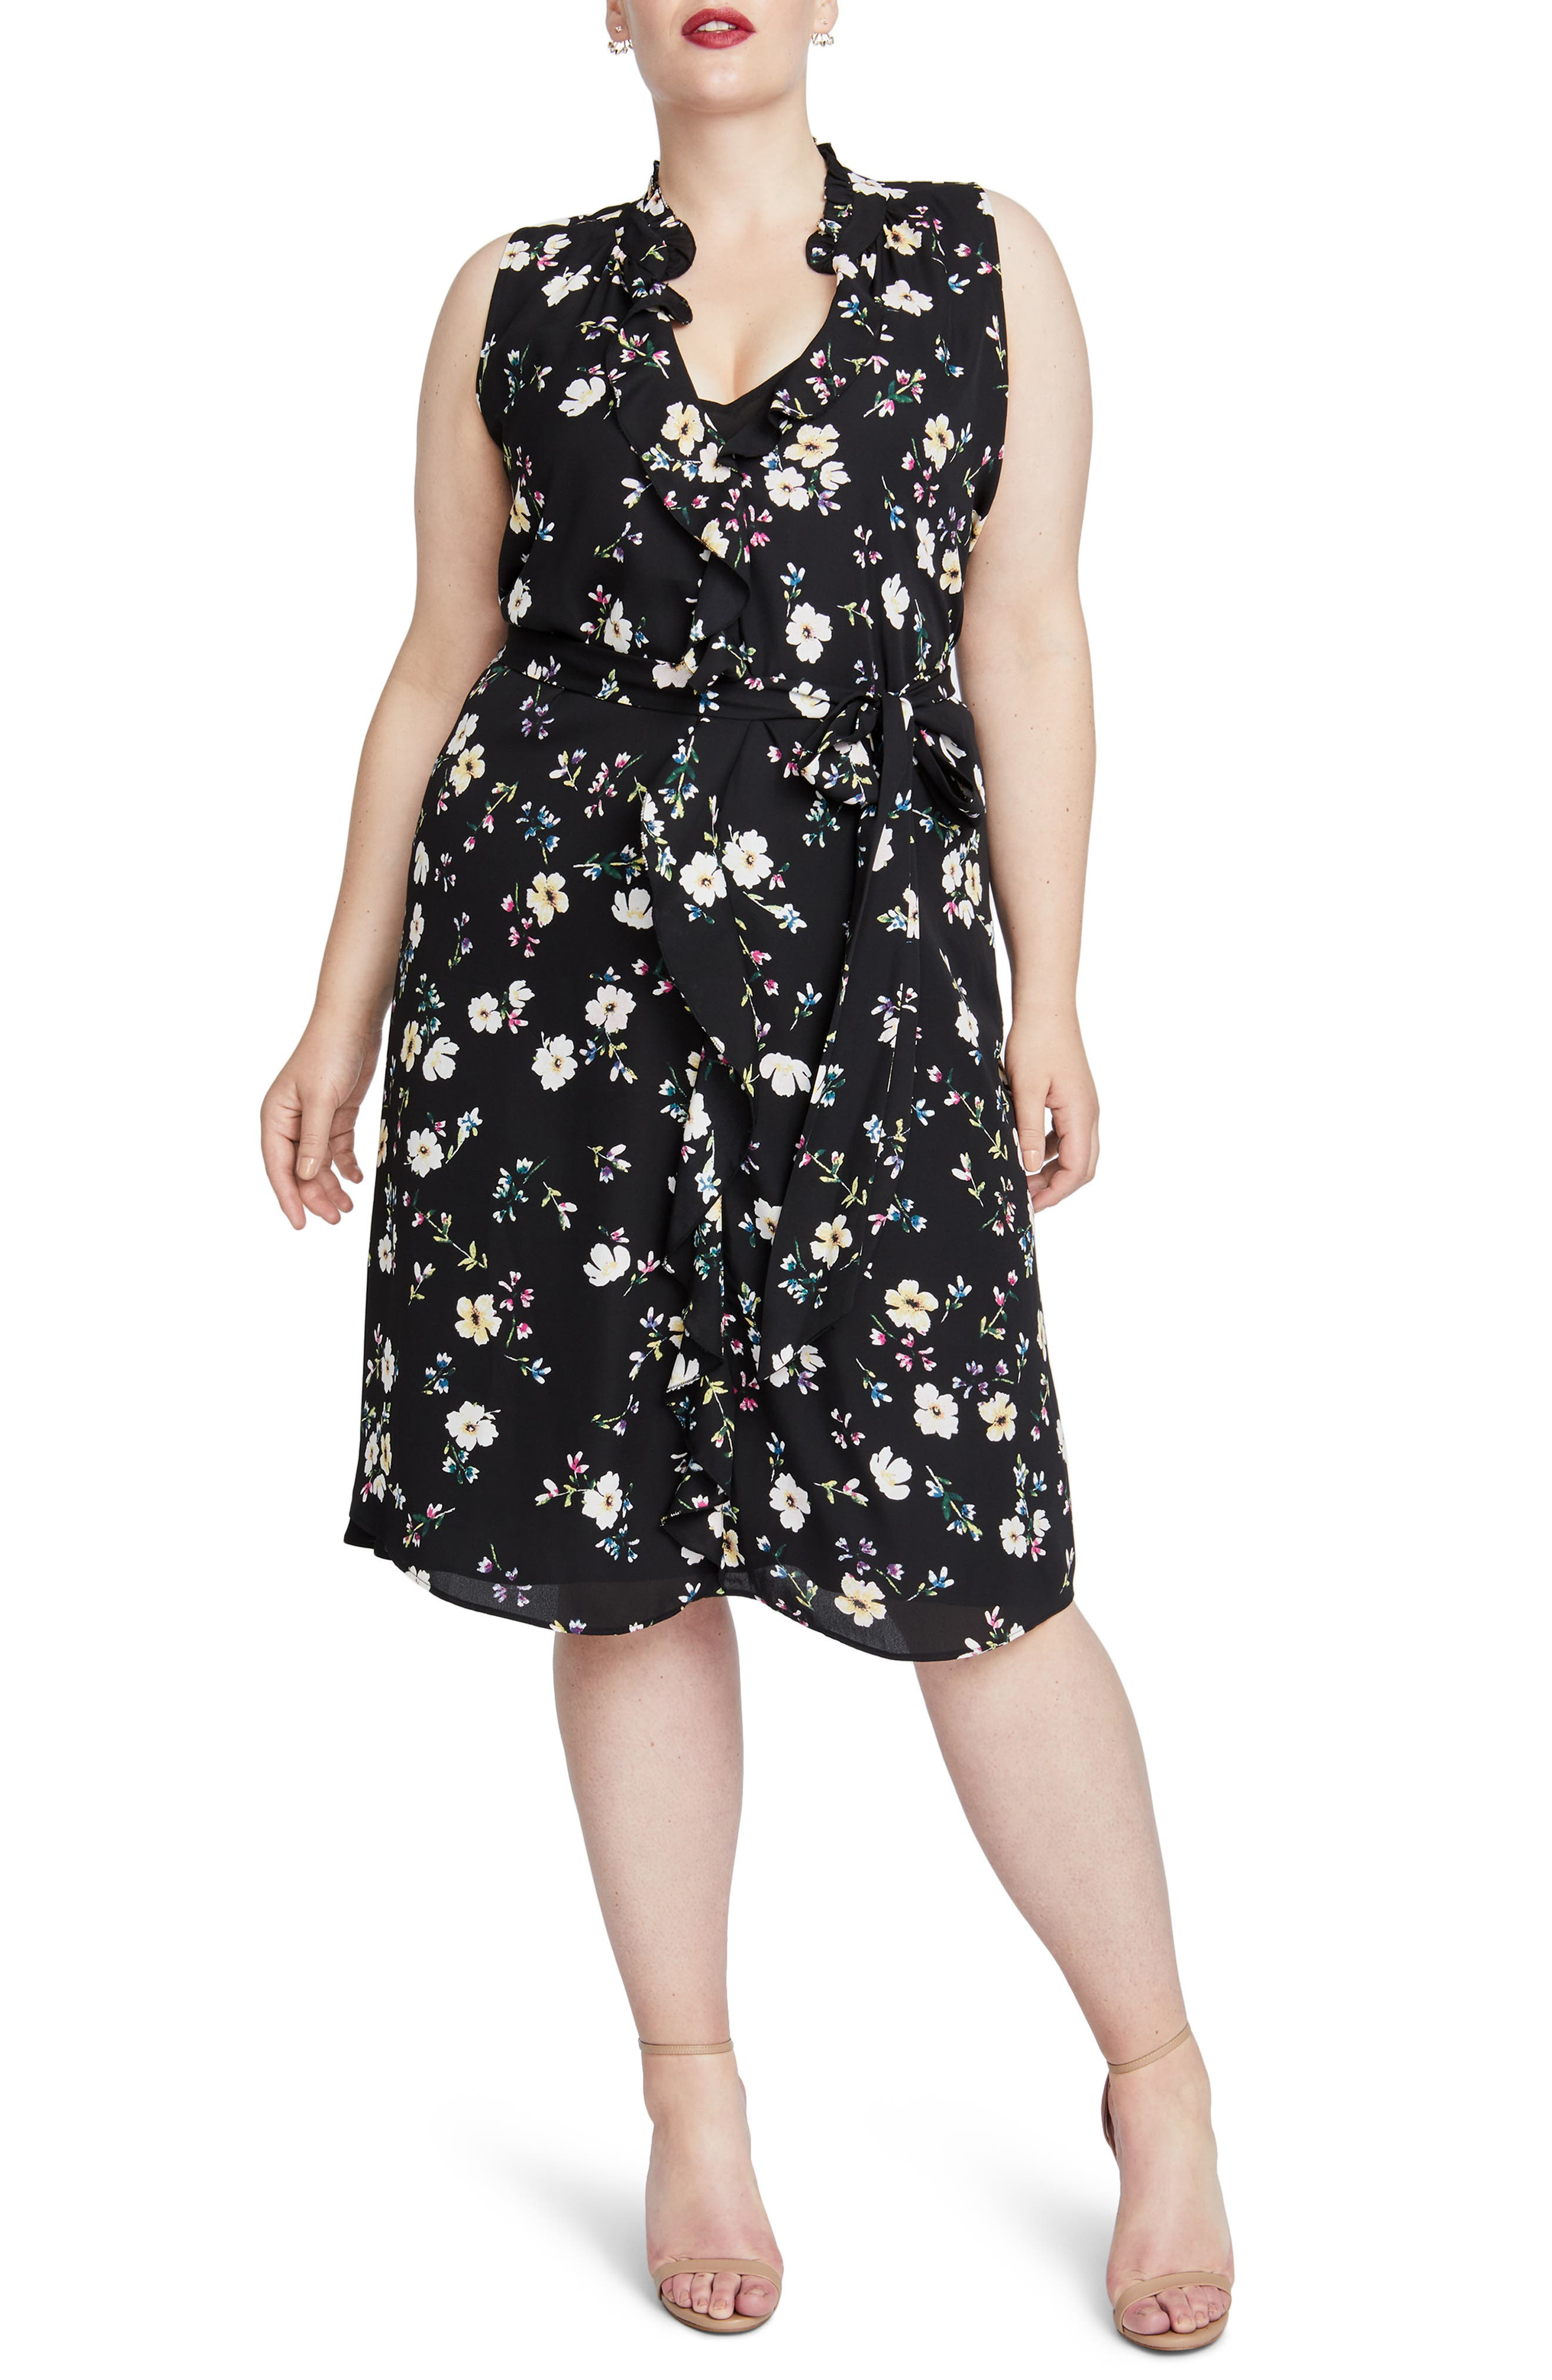 Brit Sleeveless Floral Dress,                         Main,                         color, 001